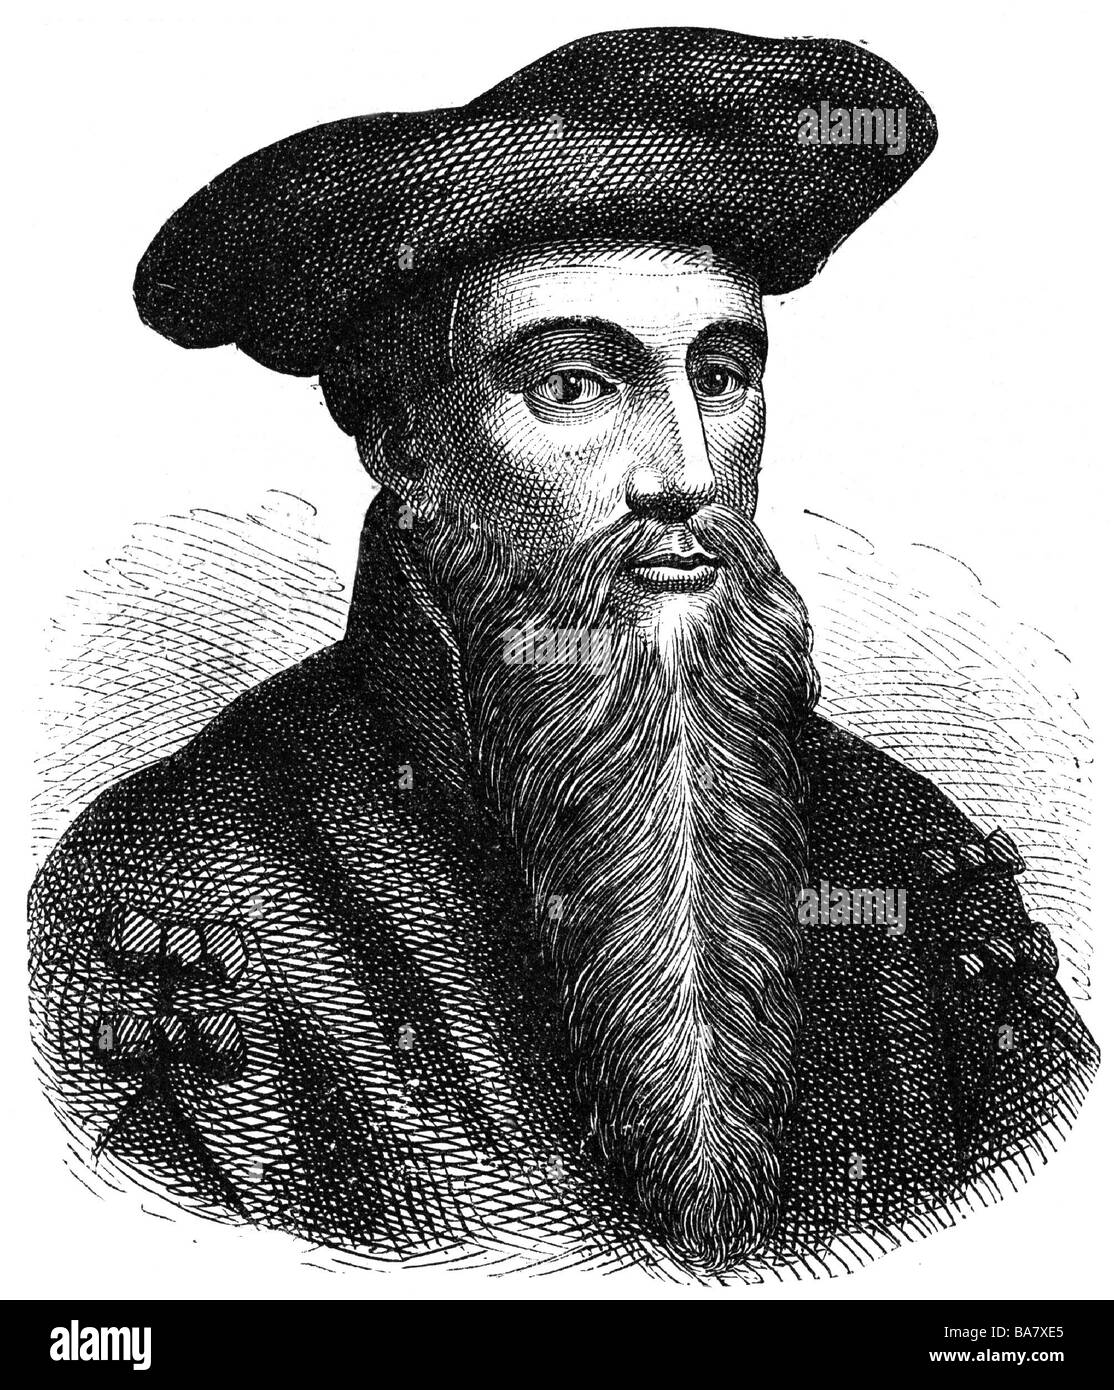 Faust, Johann Georg, 1480 - 1540, German magician, astrologer, mentalist, portrait, wood engraving, Additional-Rights - Stock Image